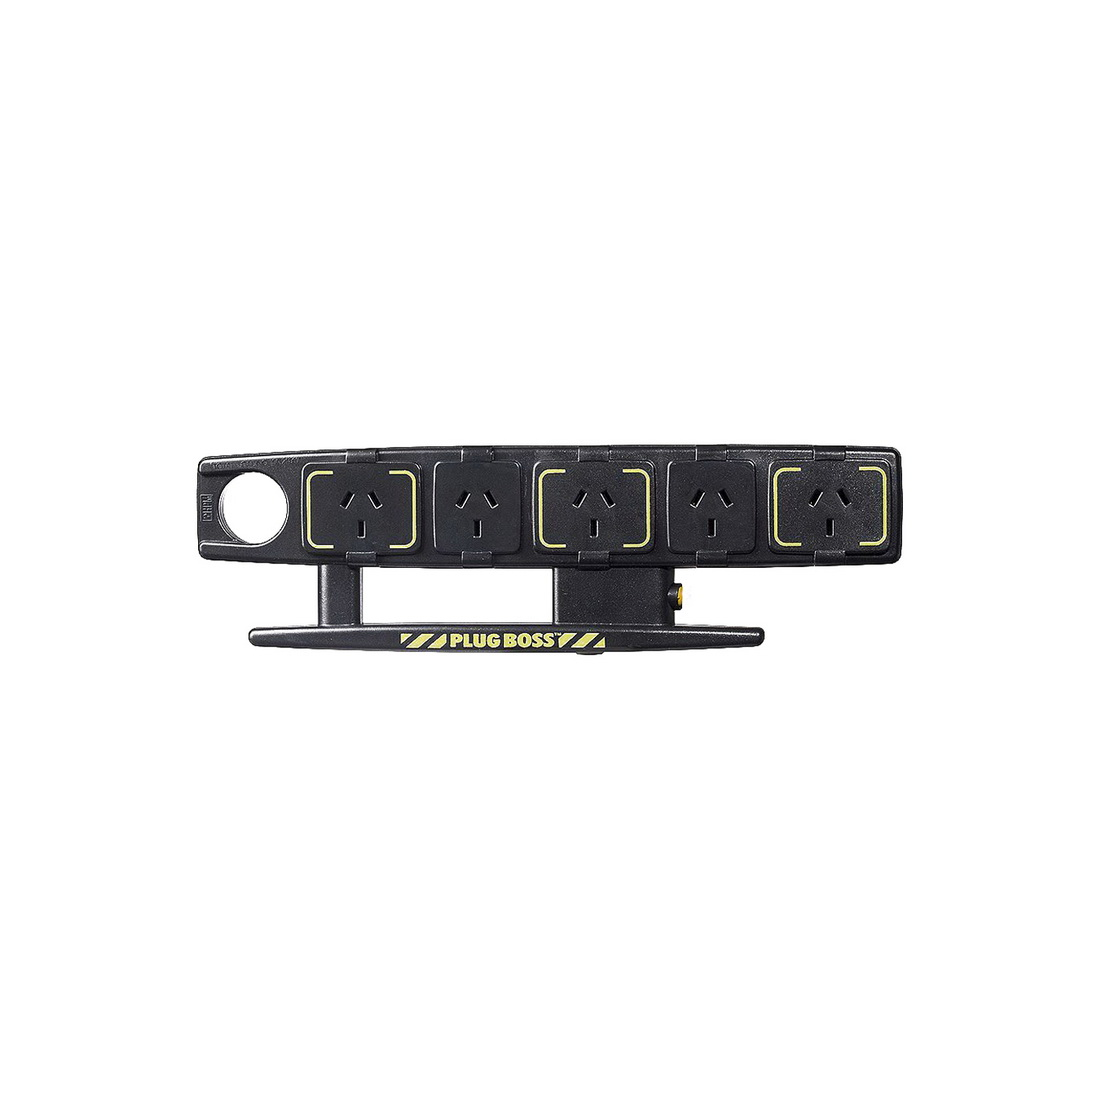 5-Outlet 1.8m Plug Boss Power Board